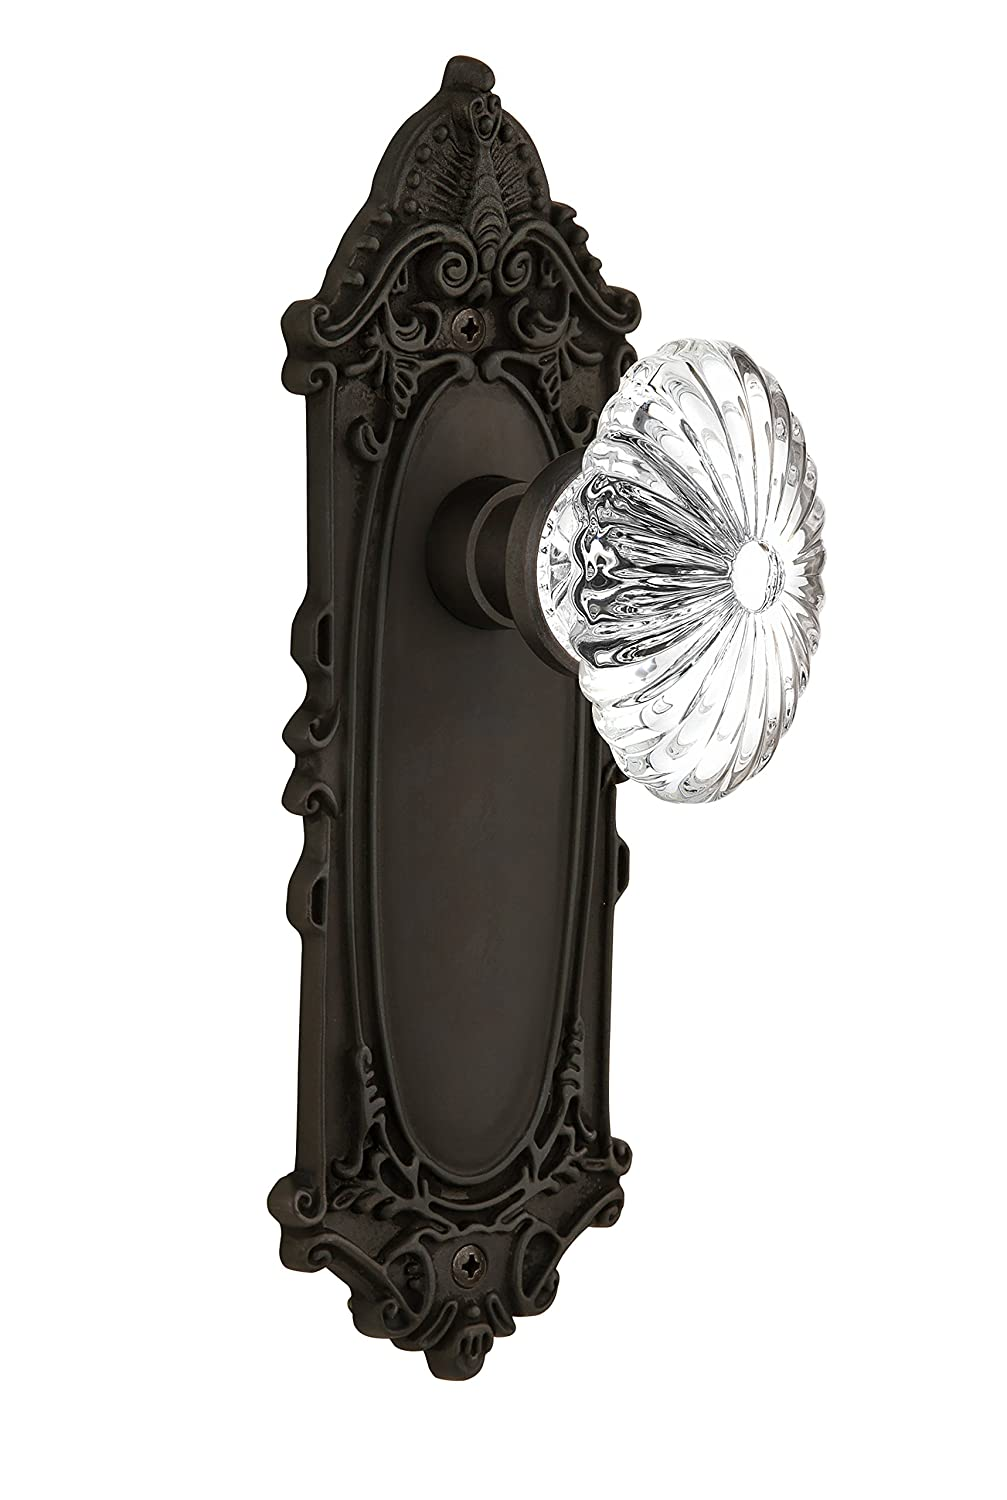 Privacy Nostalgic Warehouse Victorian Plate with Oval Fluted Crystal Glass Knob 2.375 712083 2.375 Antique Brass Privacy